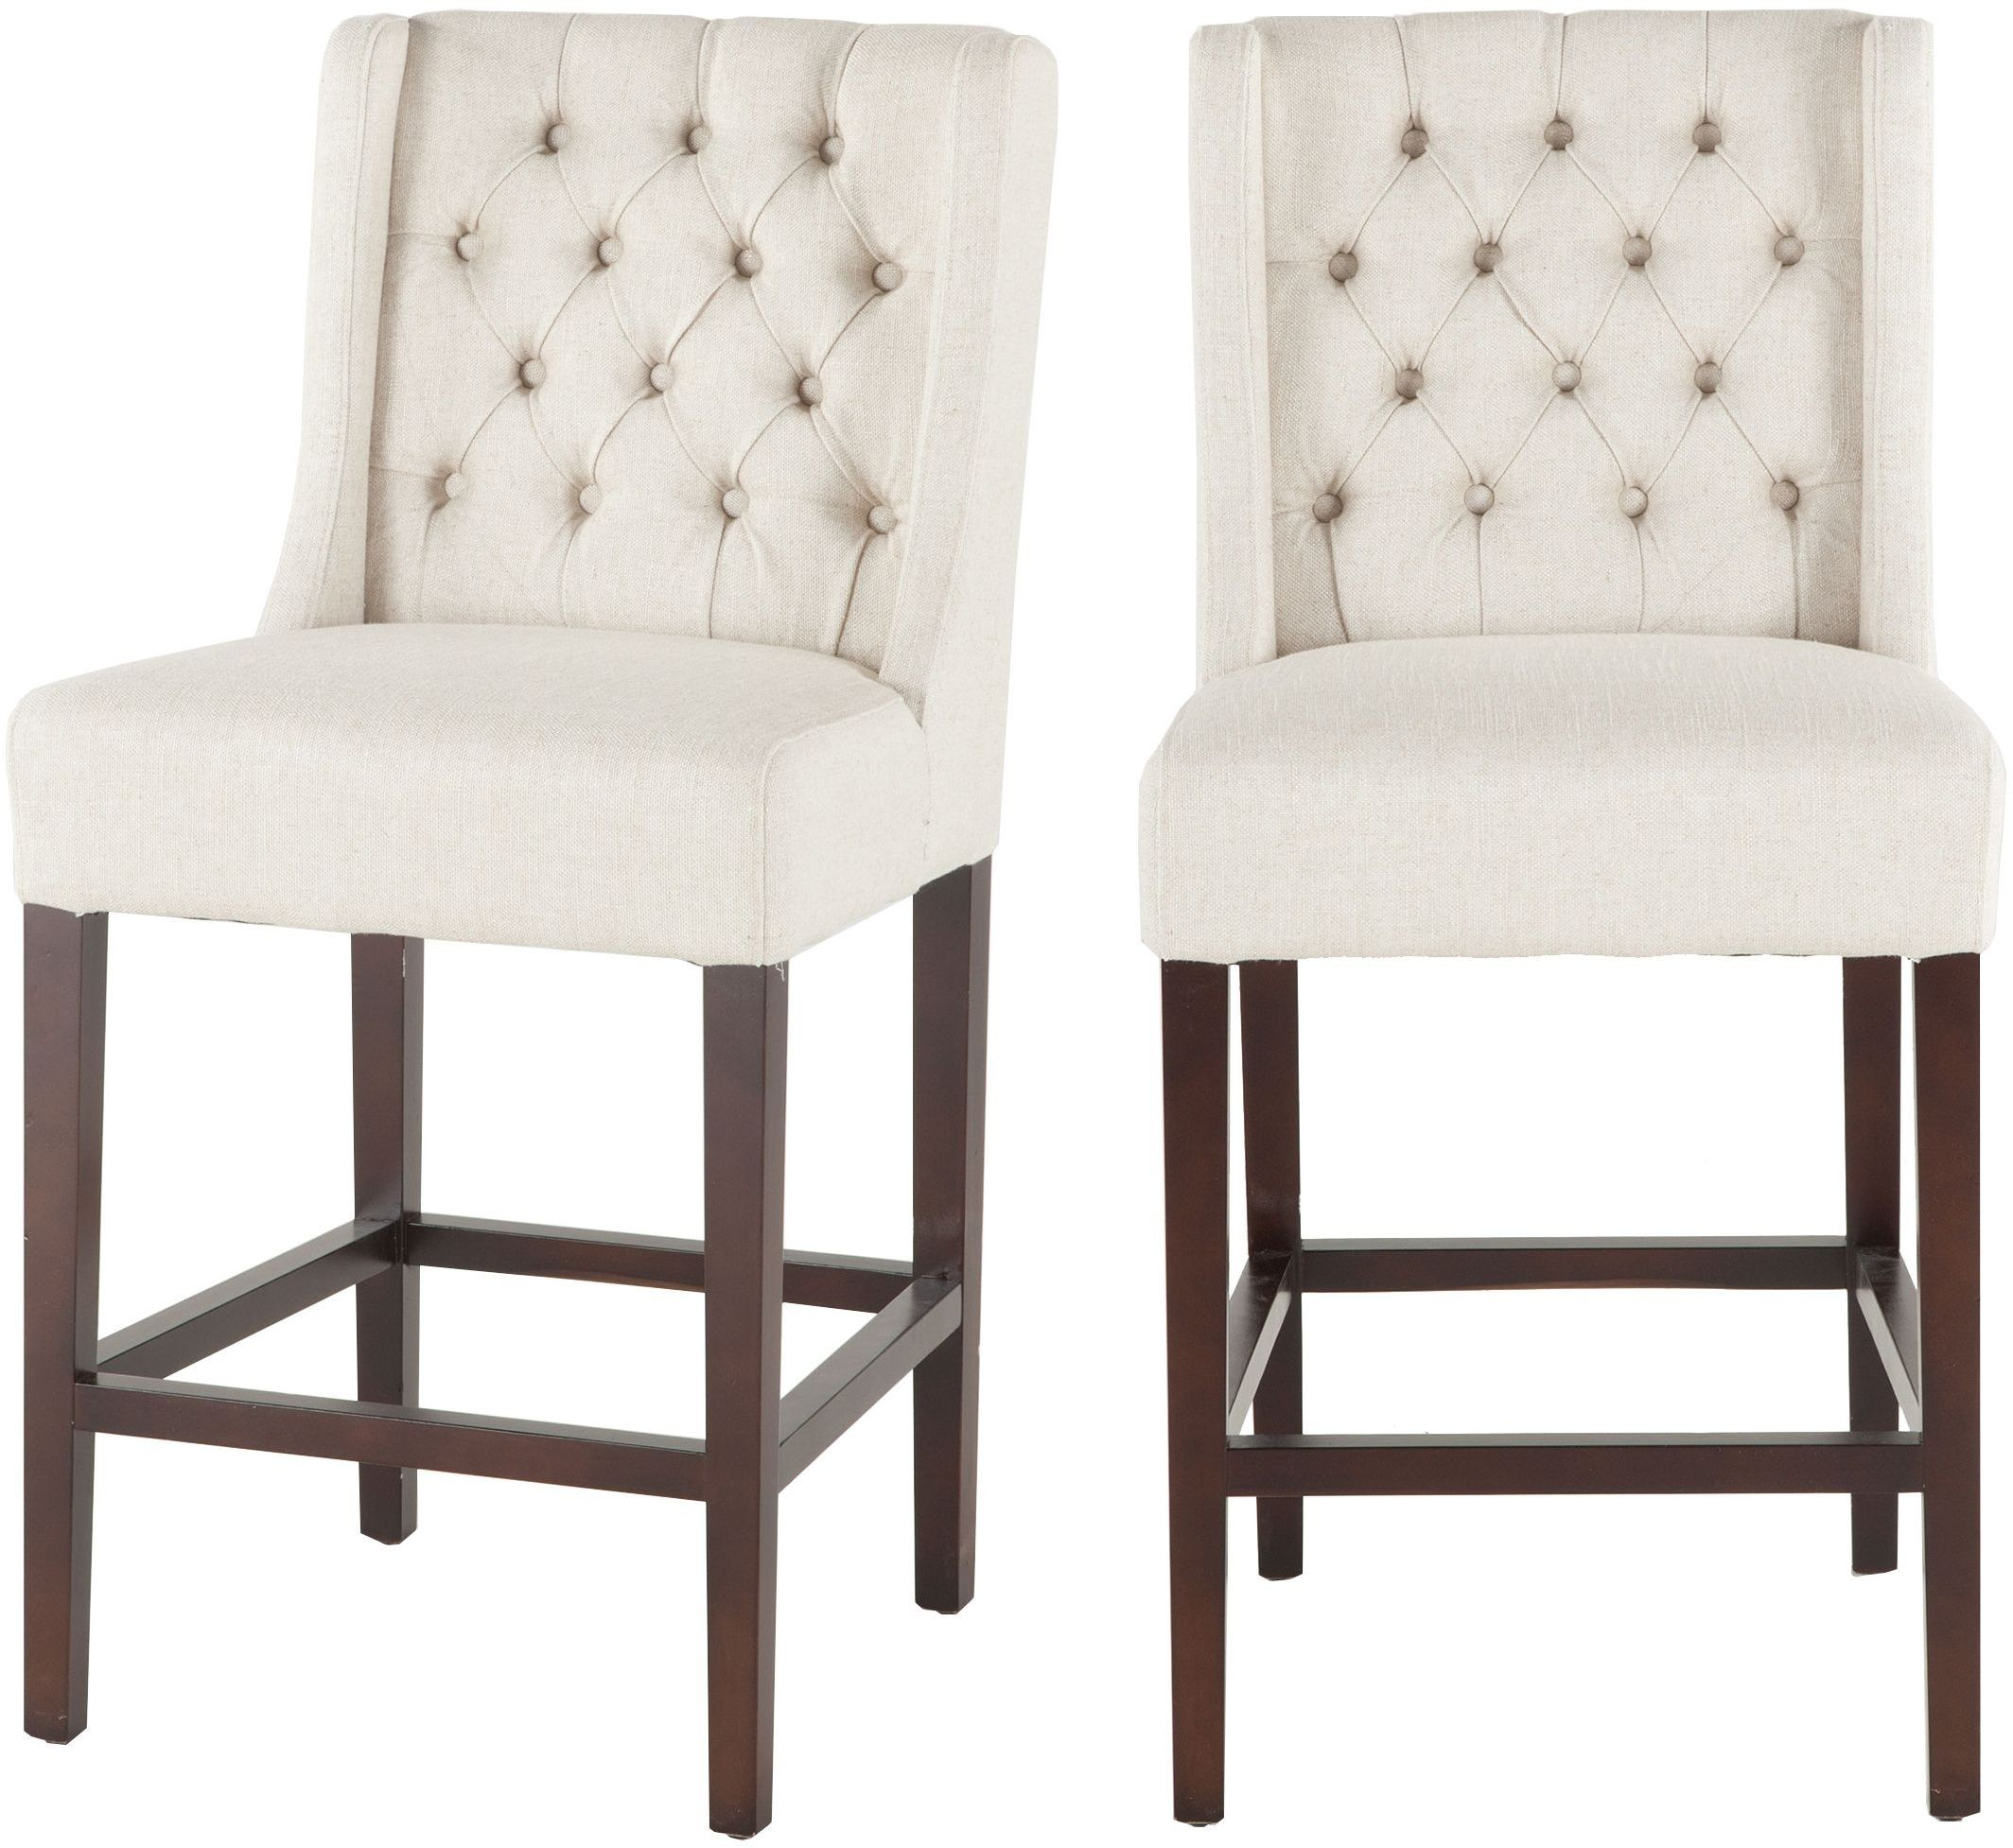 White Counter Height Chairs Chloe Off White Linen Tufted Counter Height Stool Set Of 2